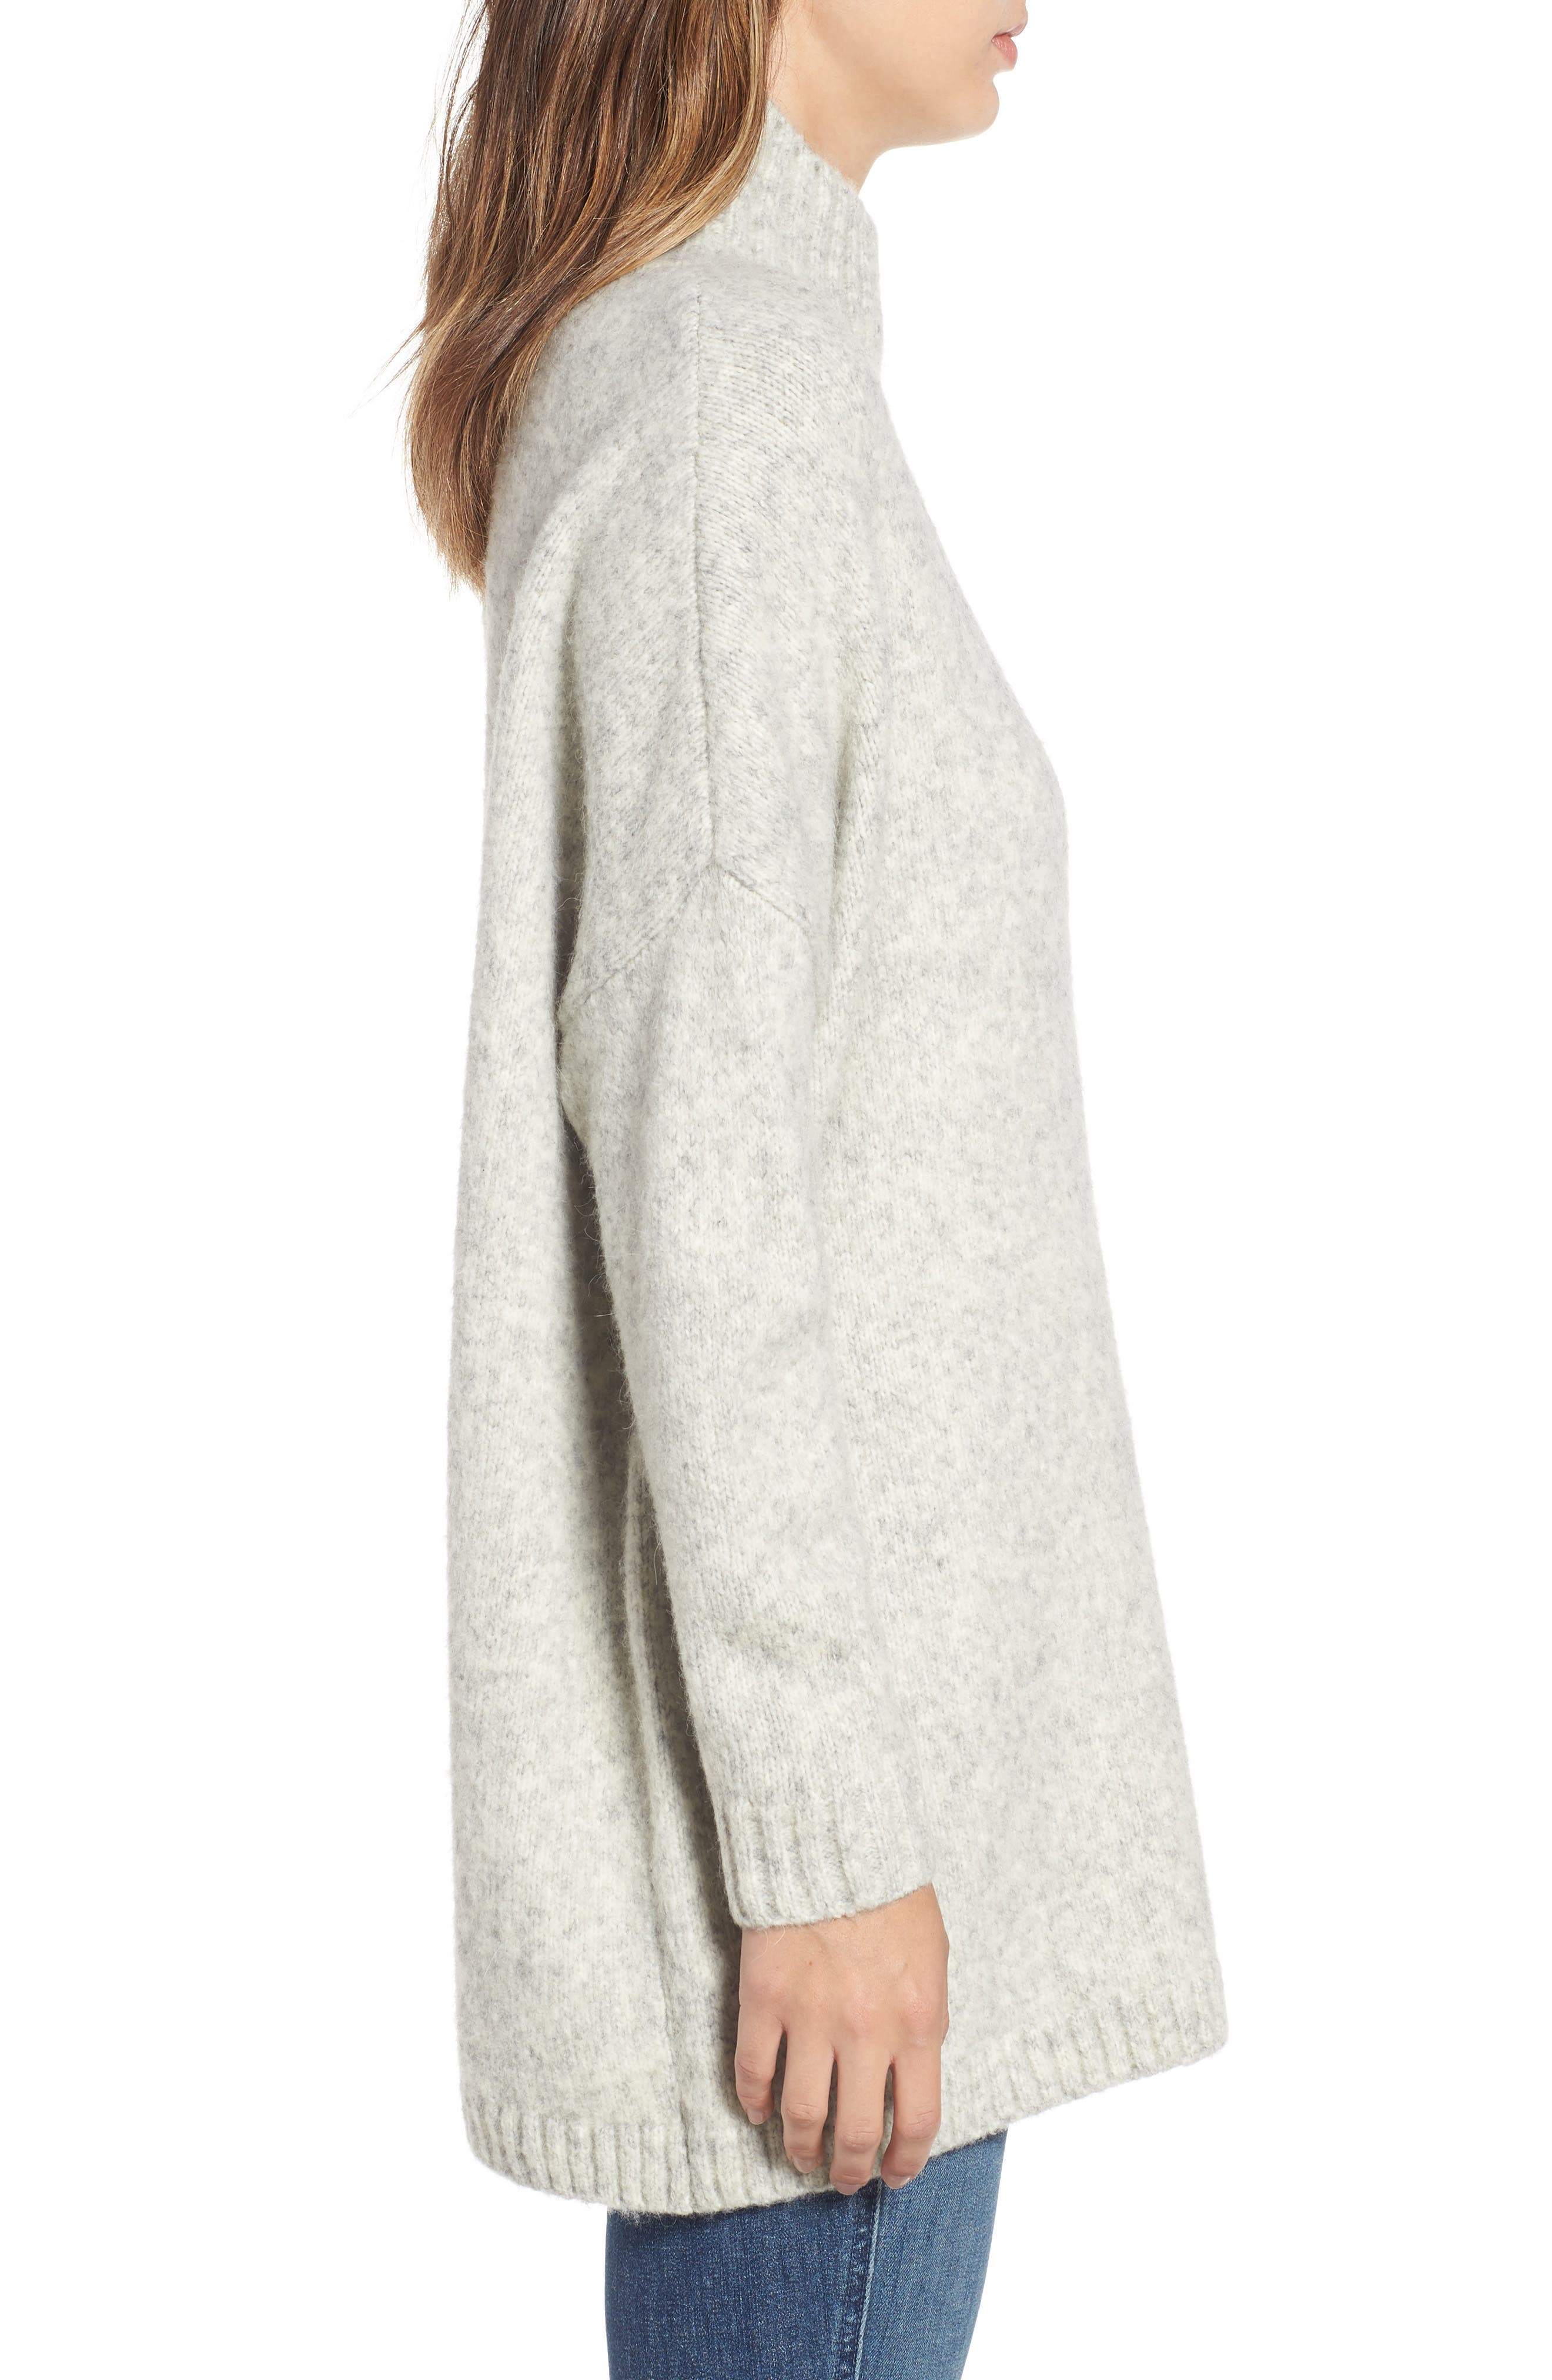 FRENCH CONNECTION, Ora Knit Pullover, Alternate thumbnail 3, color, LIGHT GREY MEL